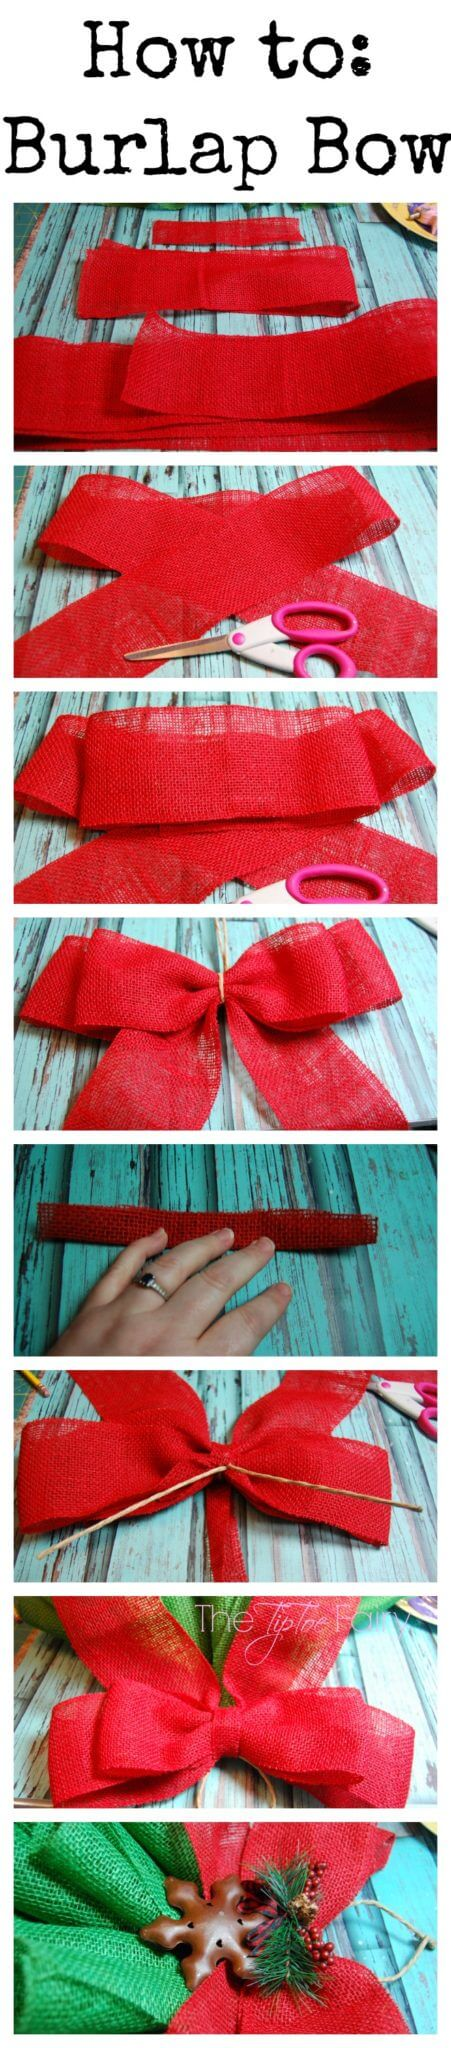 How to make a burlap bow for the burlap christmas tree.